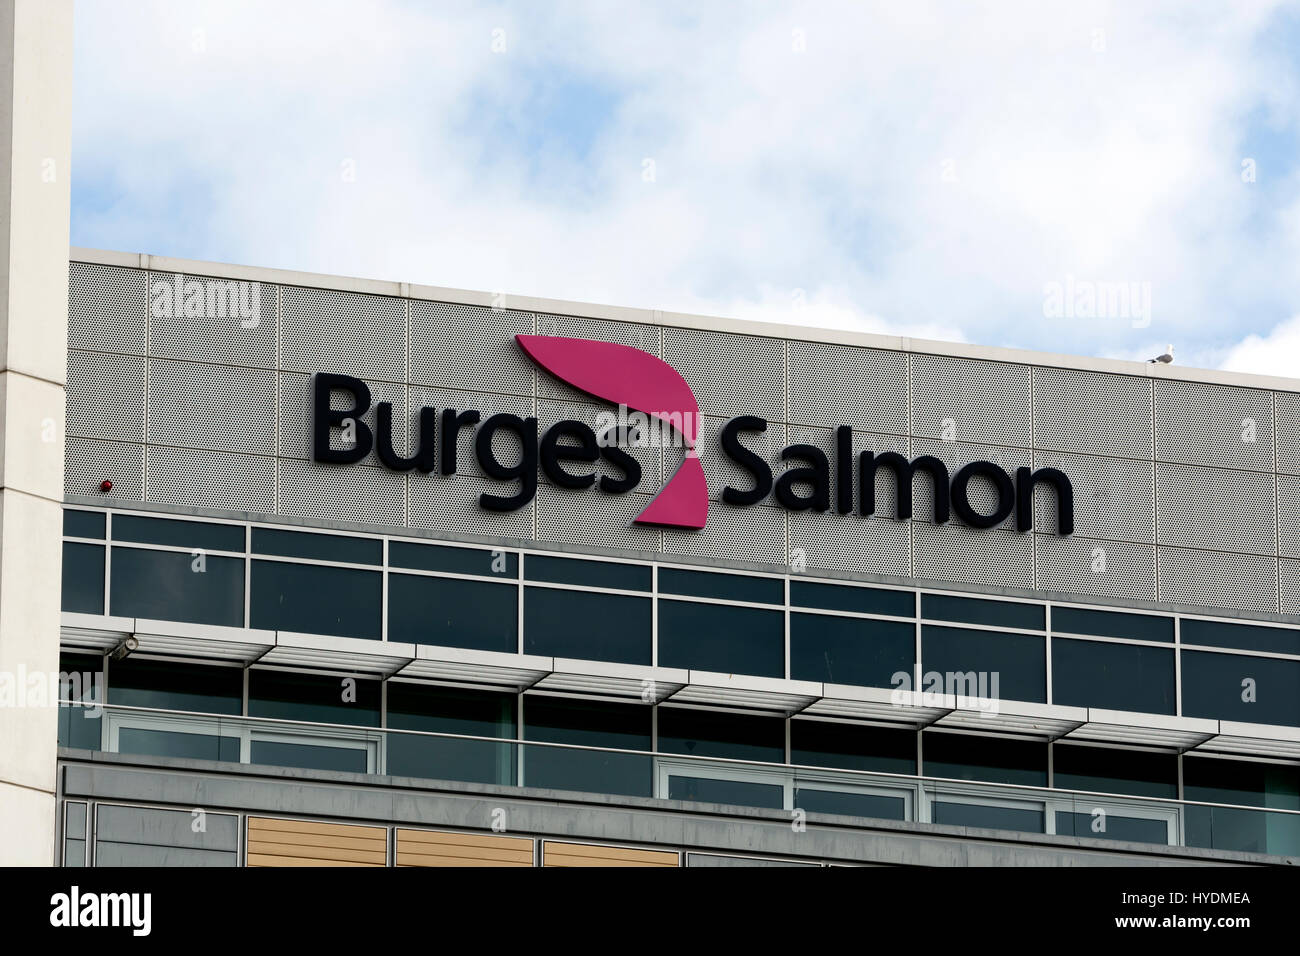 Burges Salmon law firm sign, Temple Quay, Bristol, UK - Stock Image